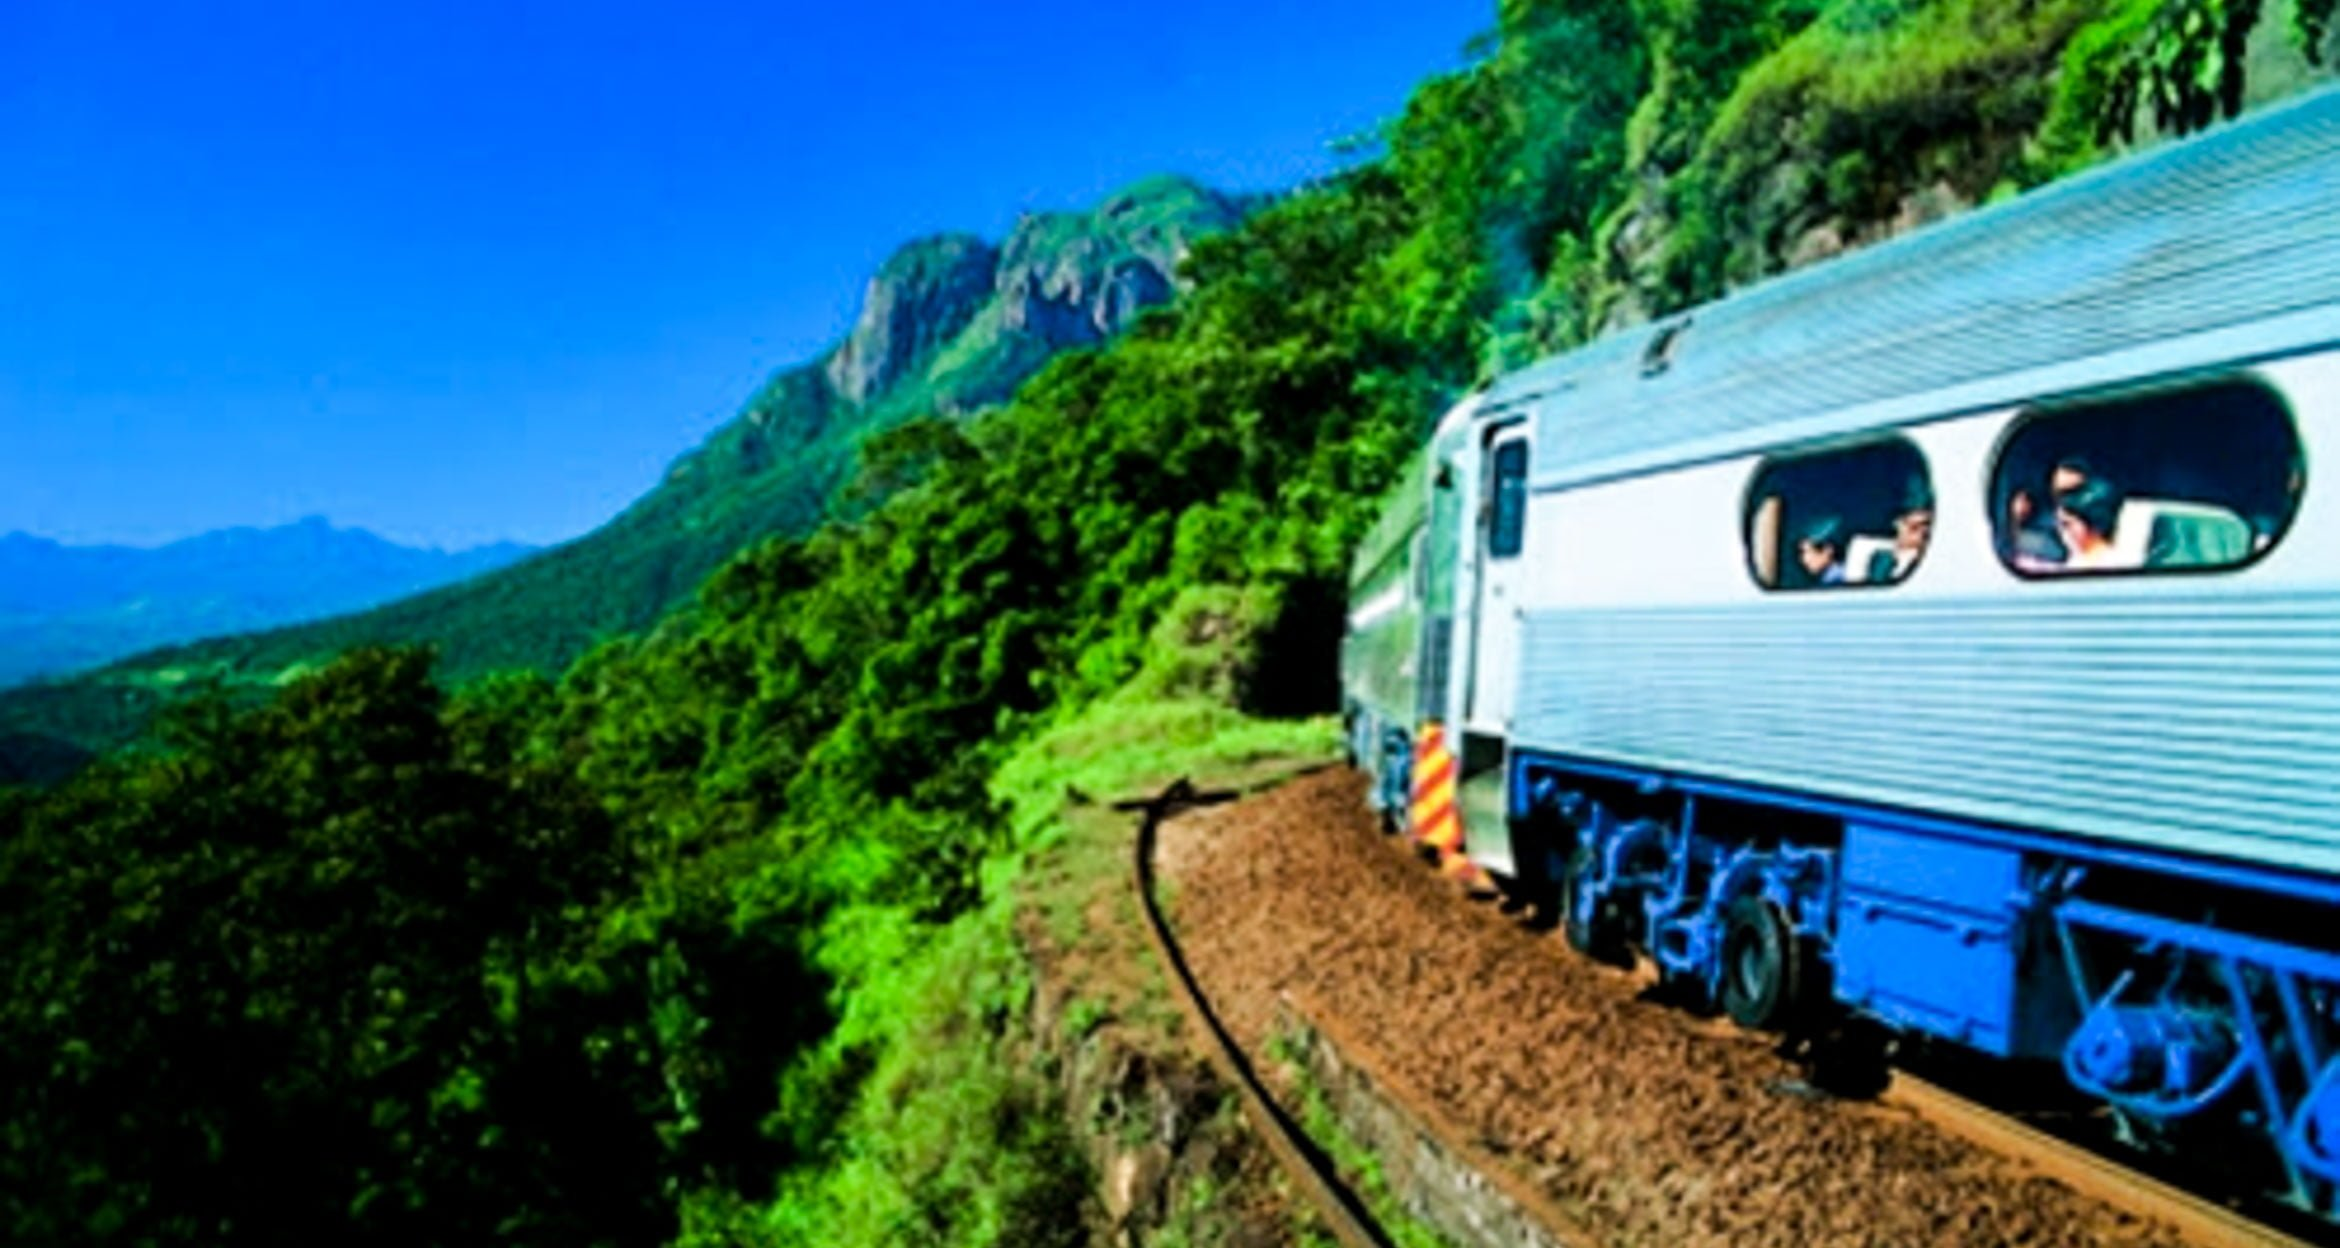 Blue train runs along railway in Brazil forest